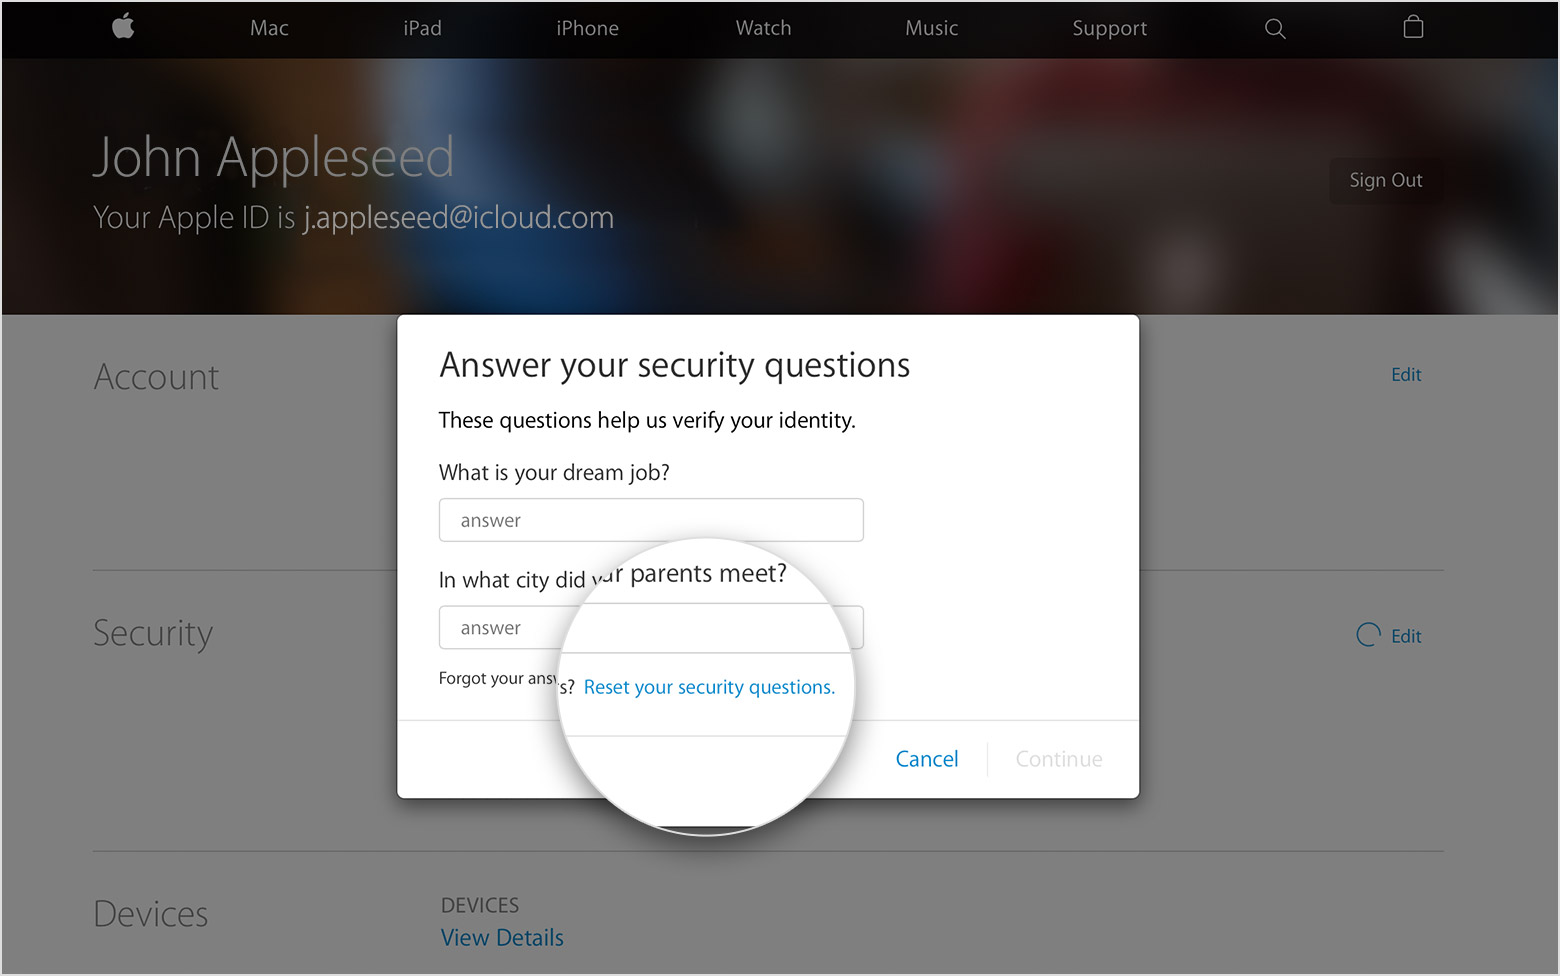 2c78f92f-b8f4-410c-95a6-74999300536b_Reset your security Questions.jpg